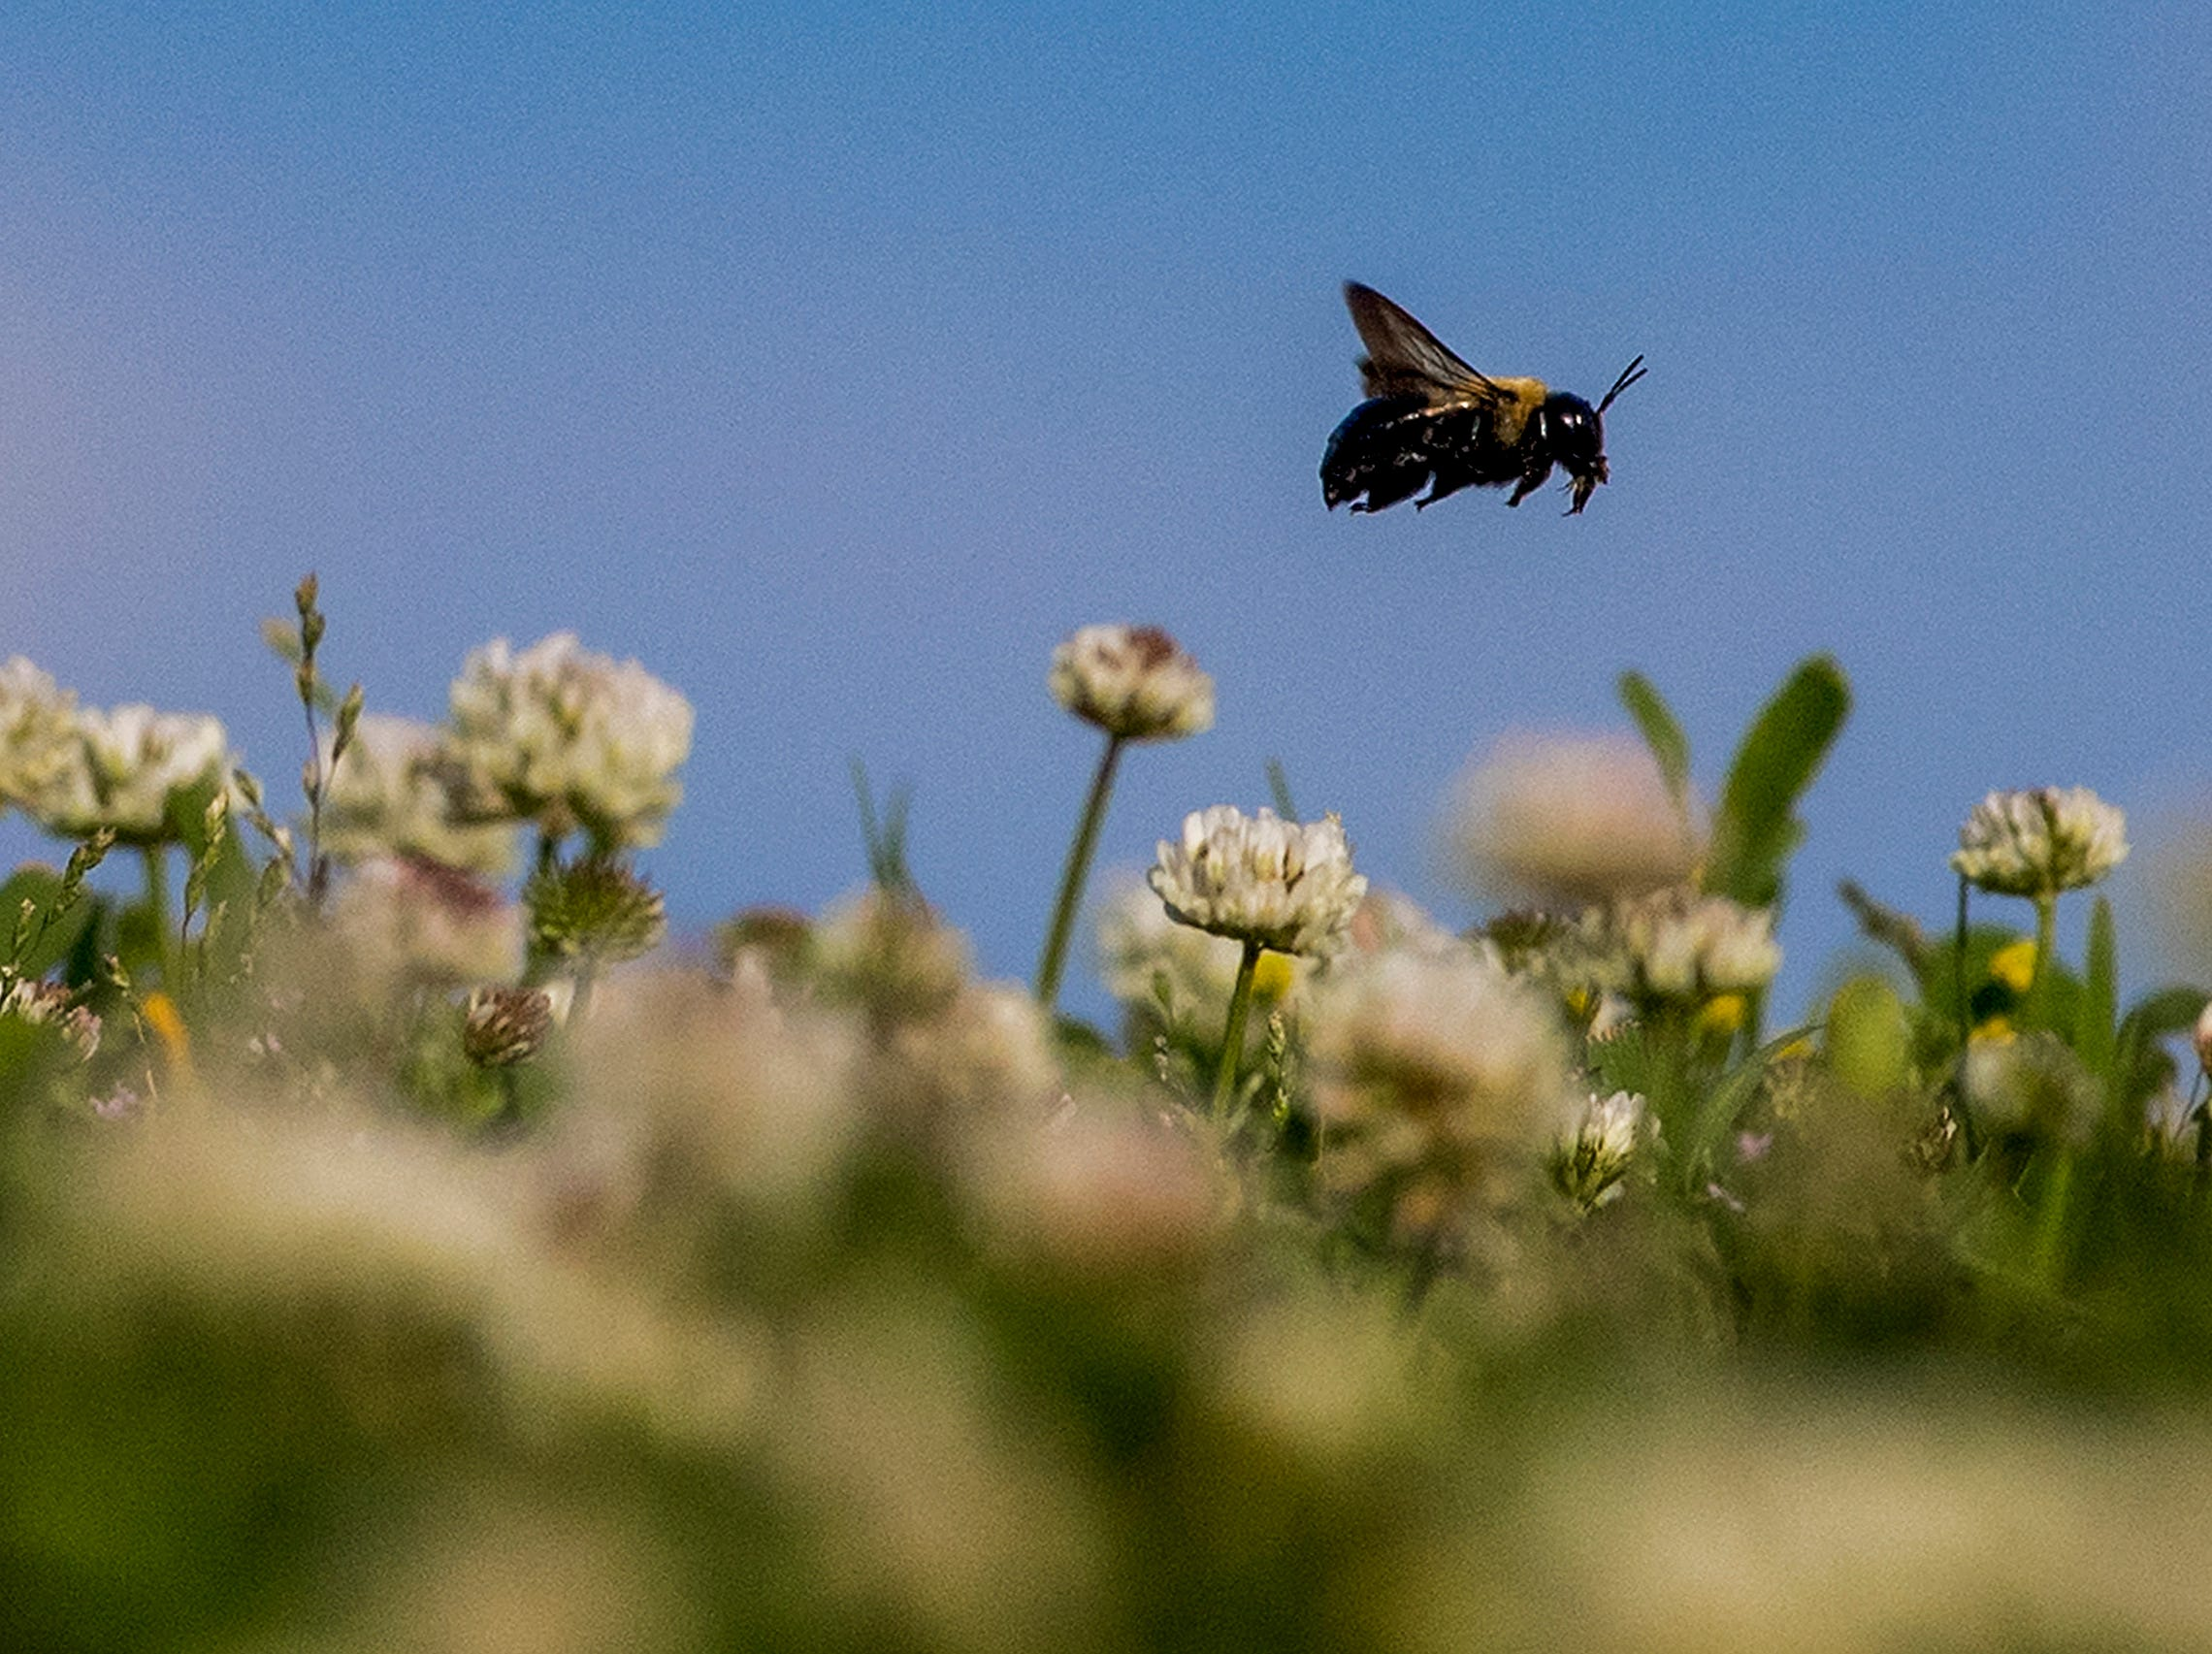 A bee flies over clover in Blount Cultural Park in Montgomery, Ala. on April 3, 2018.